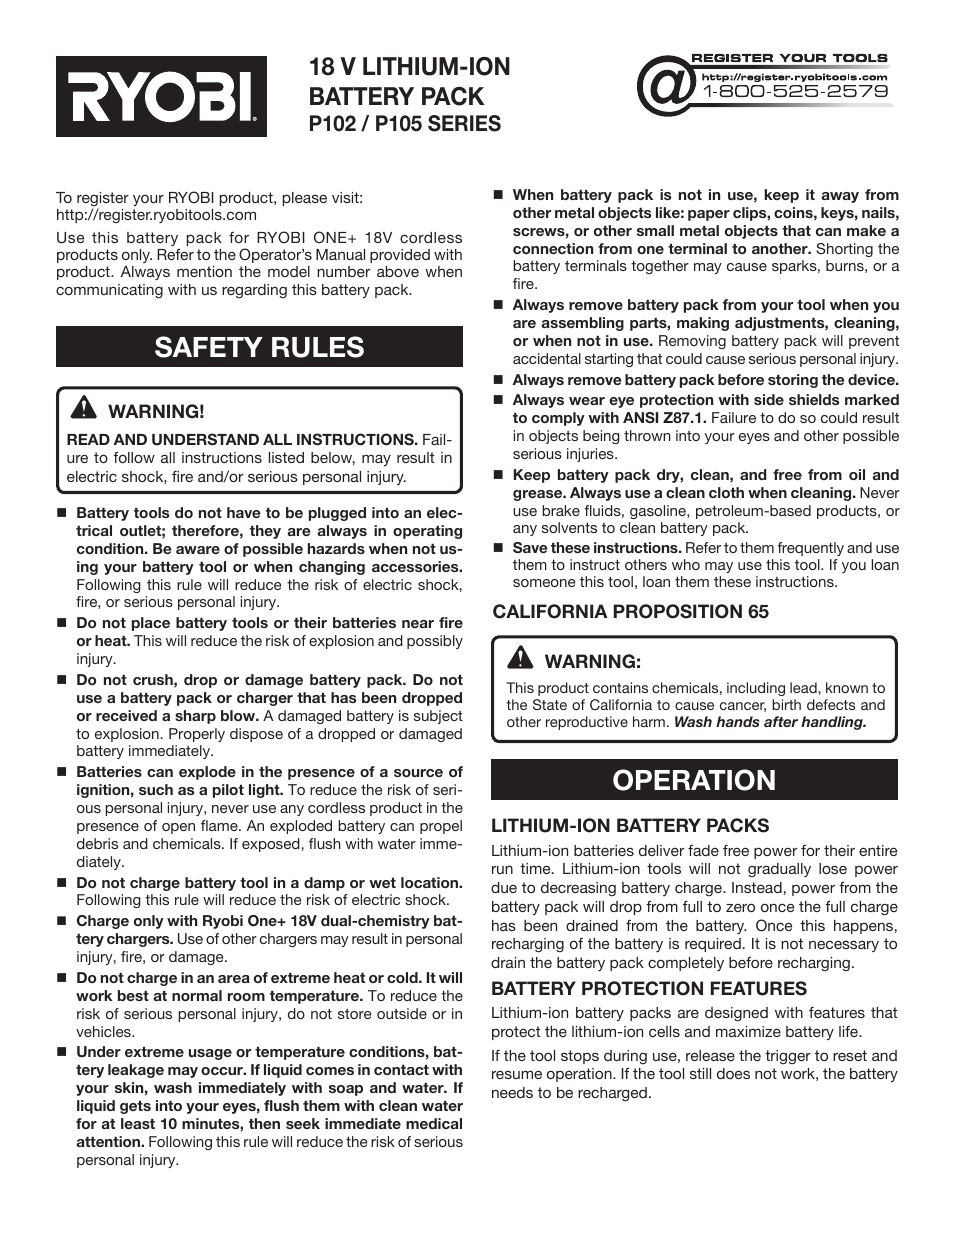 Ryobi 105r User Manual Weed Eater Parts Diagram On Air Box Cover